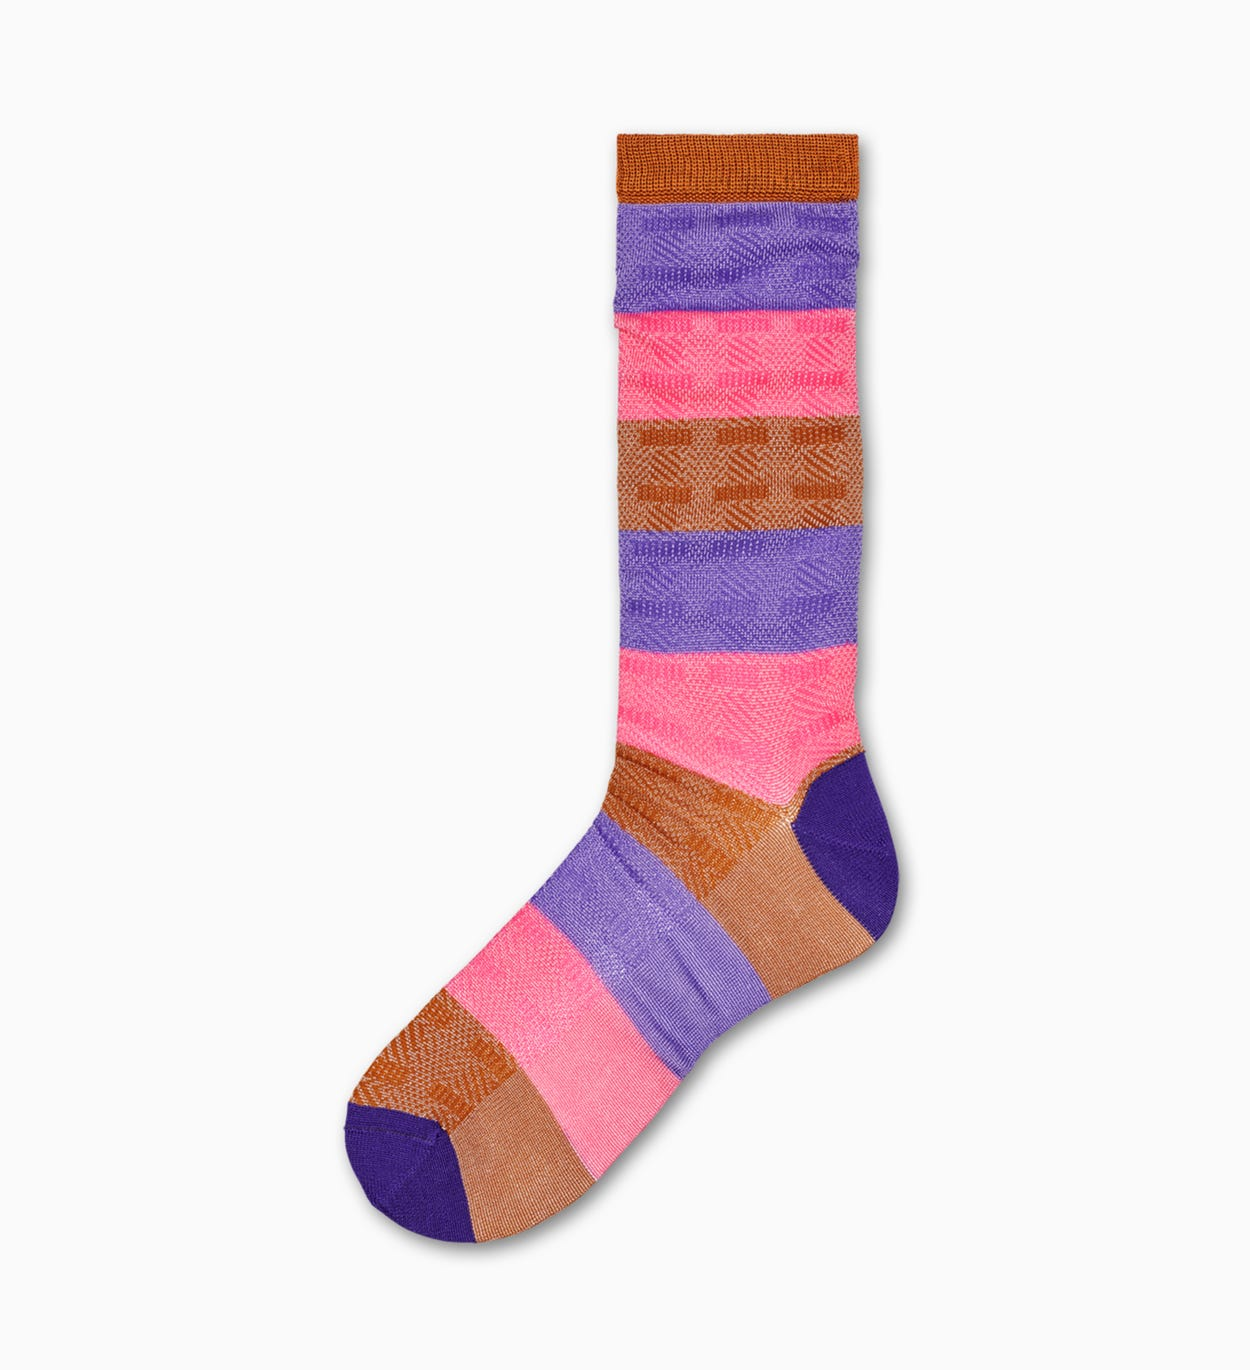 Pink mid high socks: Myggan | Hysteria by Happy Socks